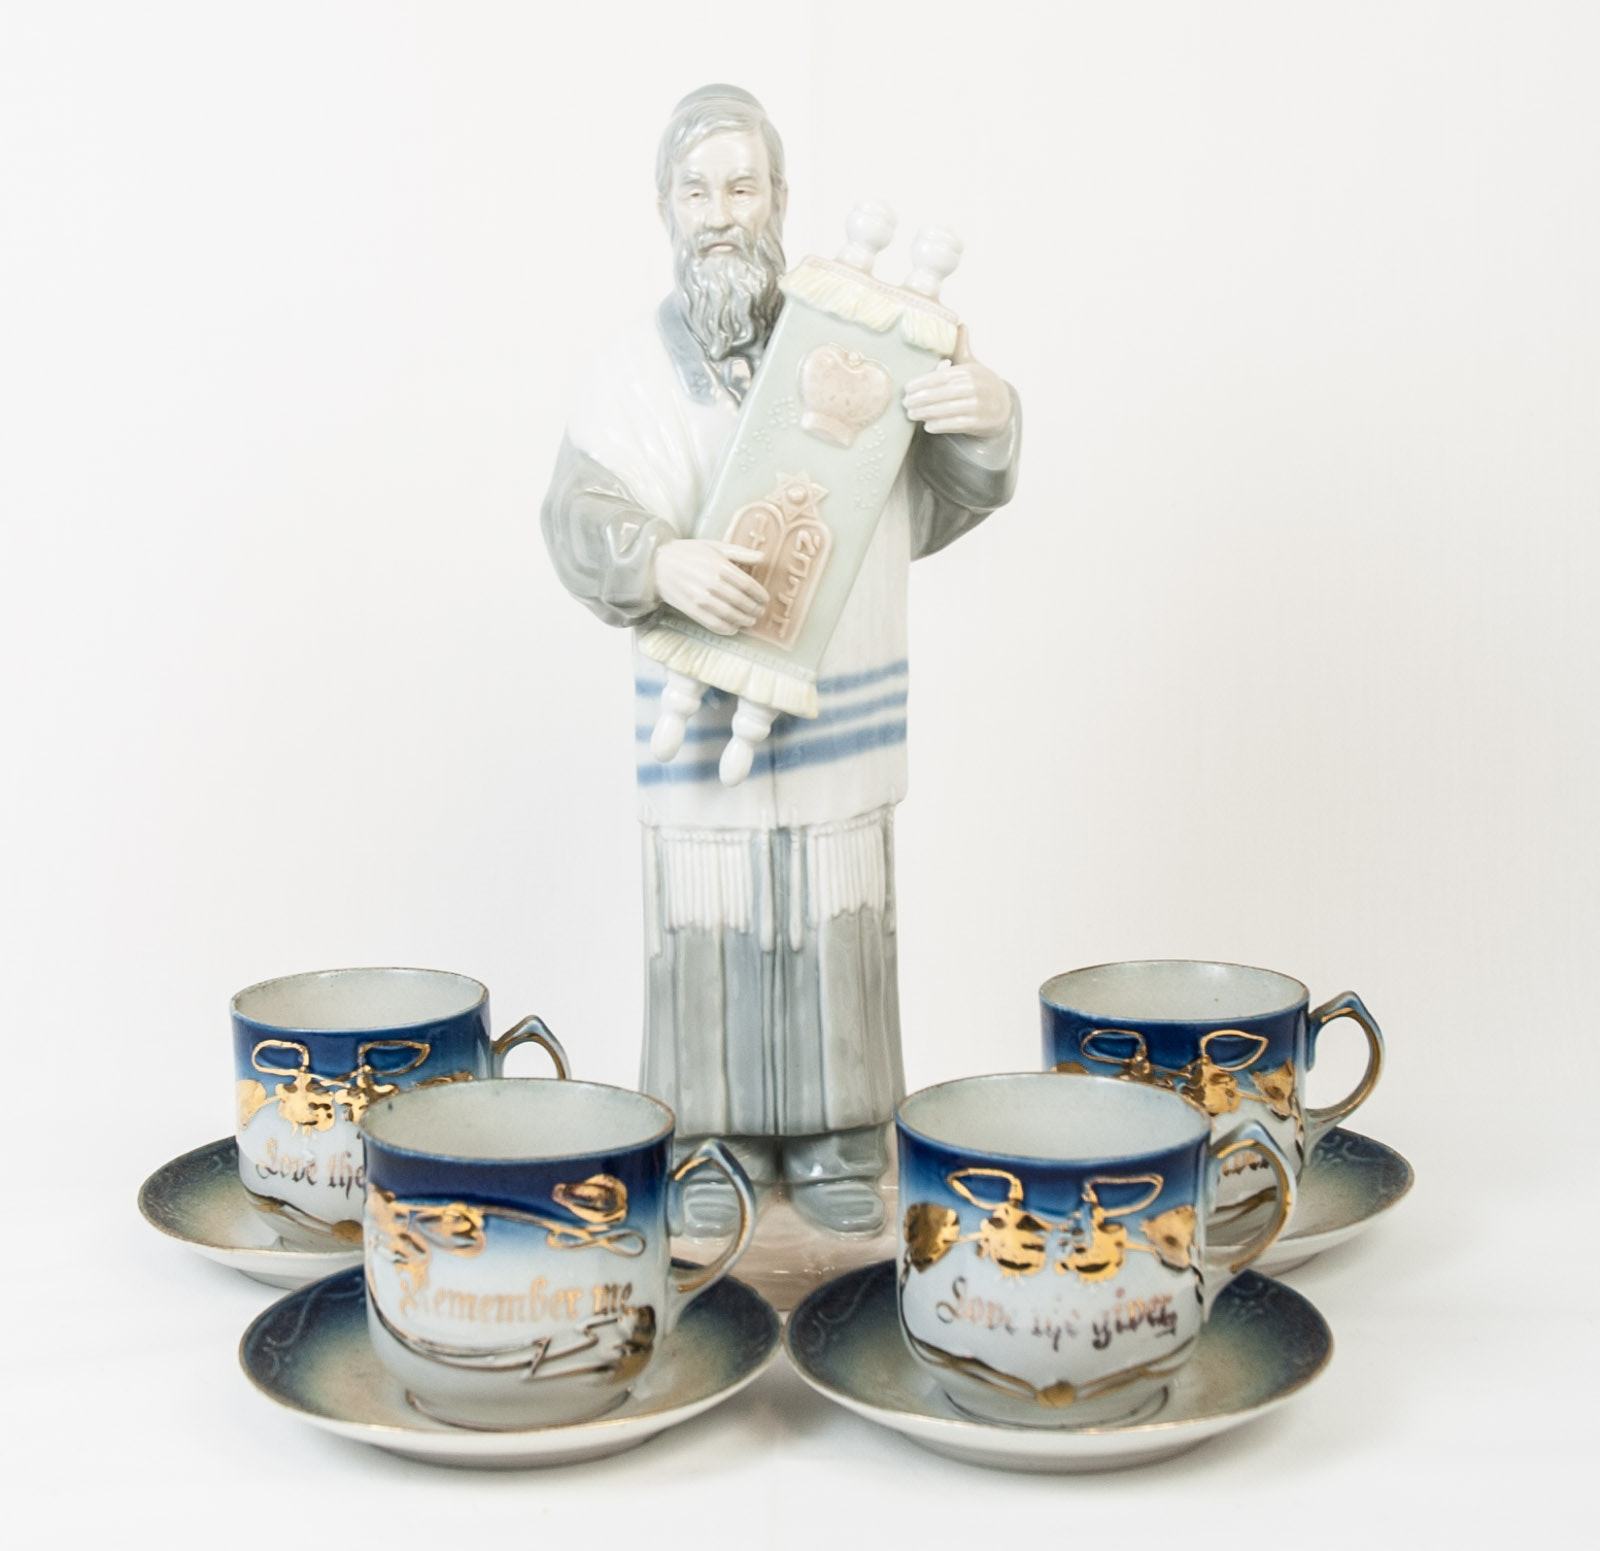 Vintage German Porcelain Memento Tea Cups and Saucers with an IGD Rabbi Figurine